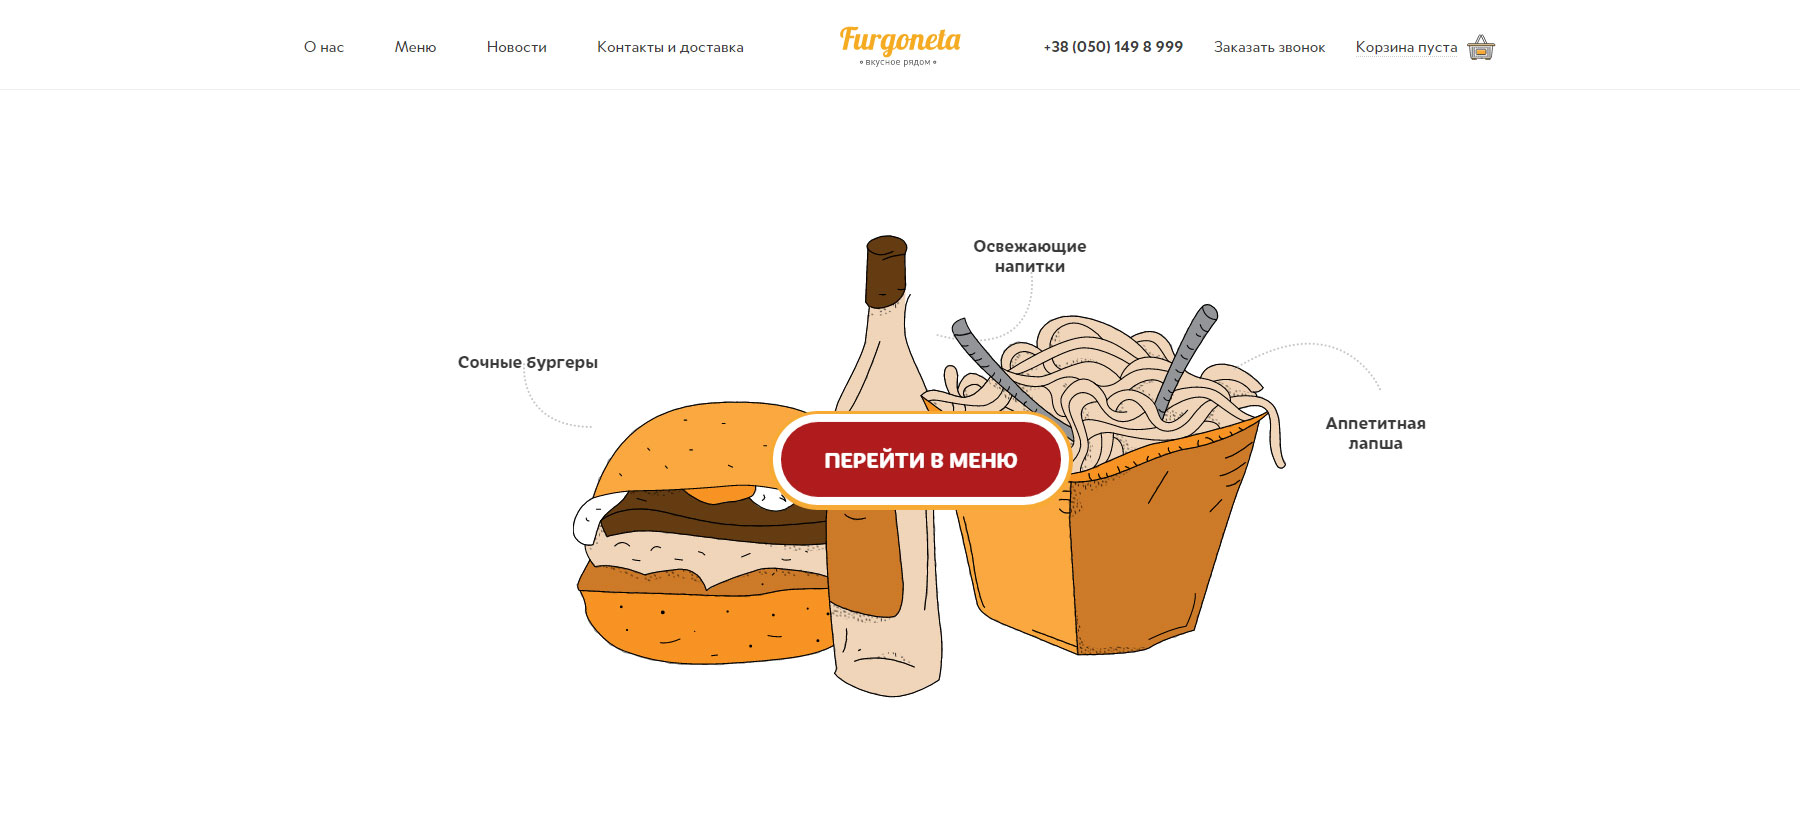 Furgoneta - Website of the Day